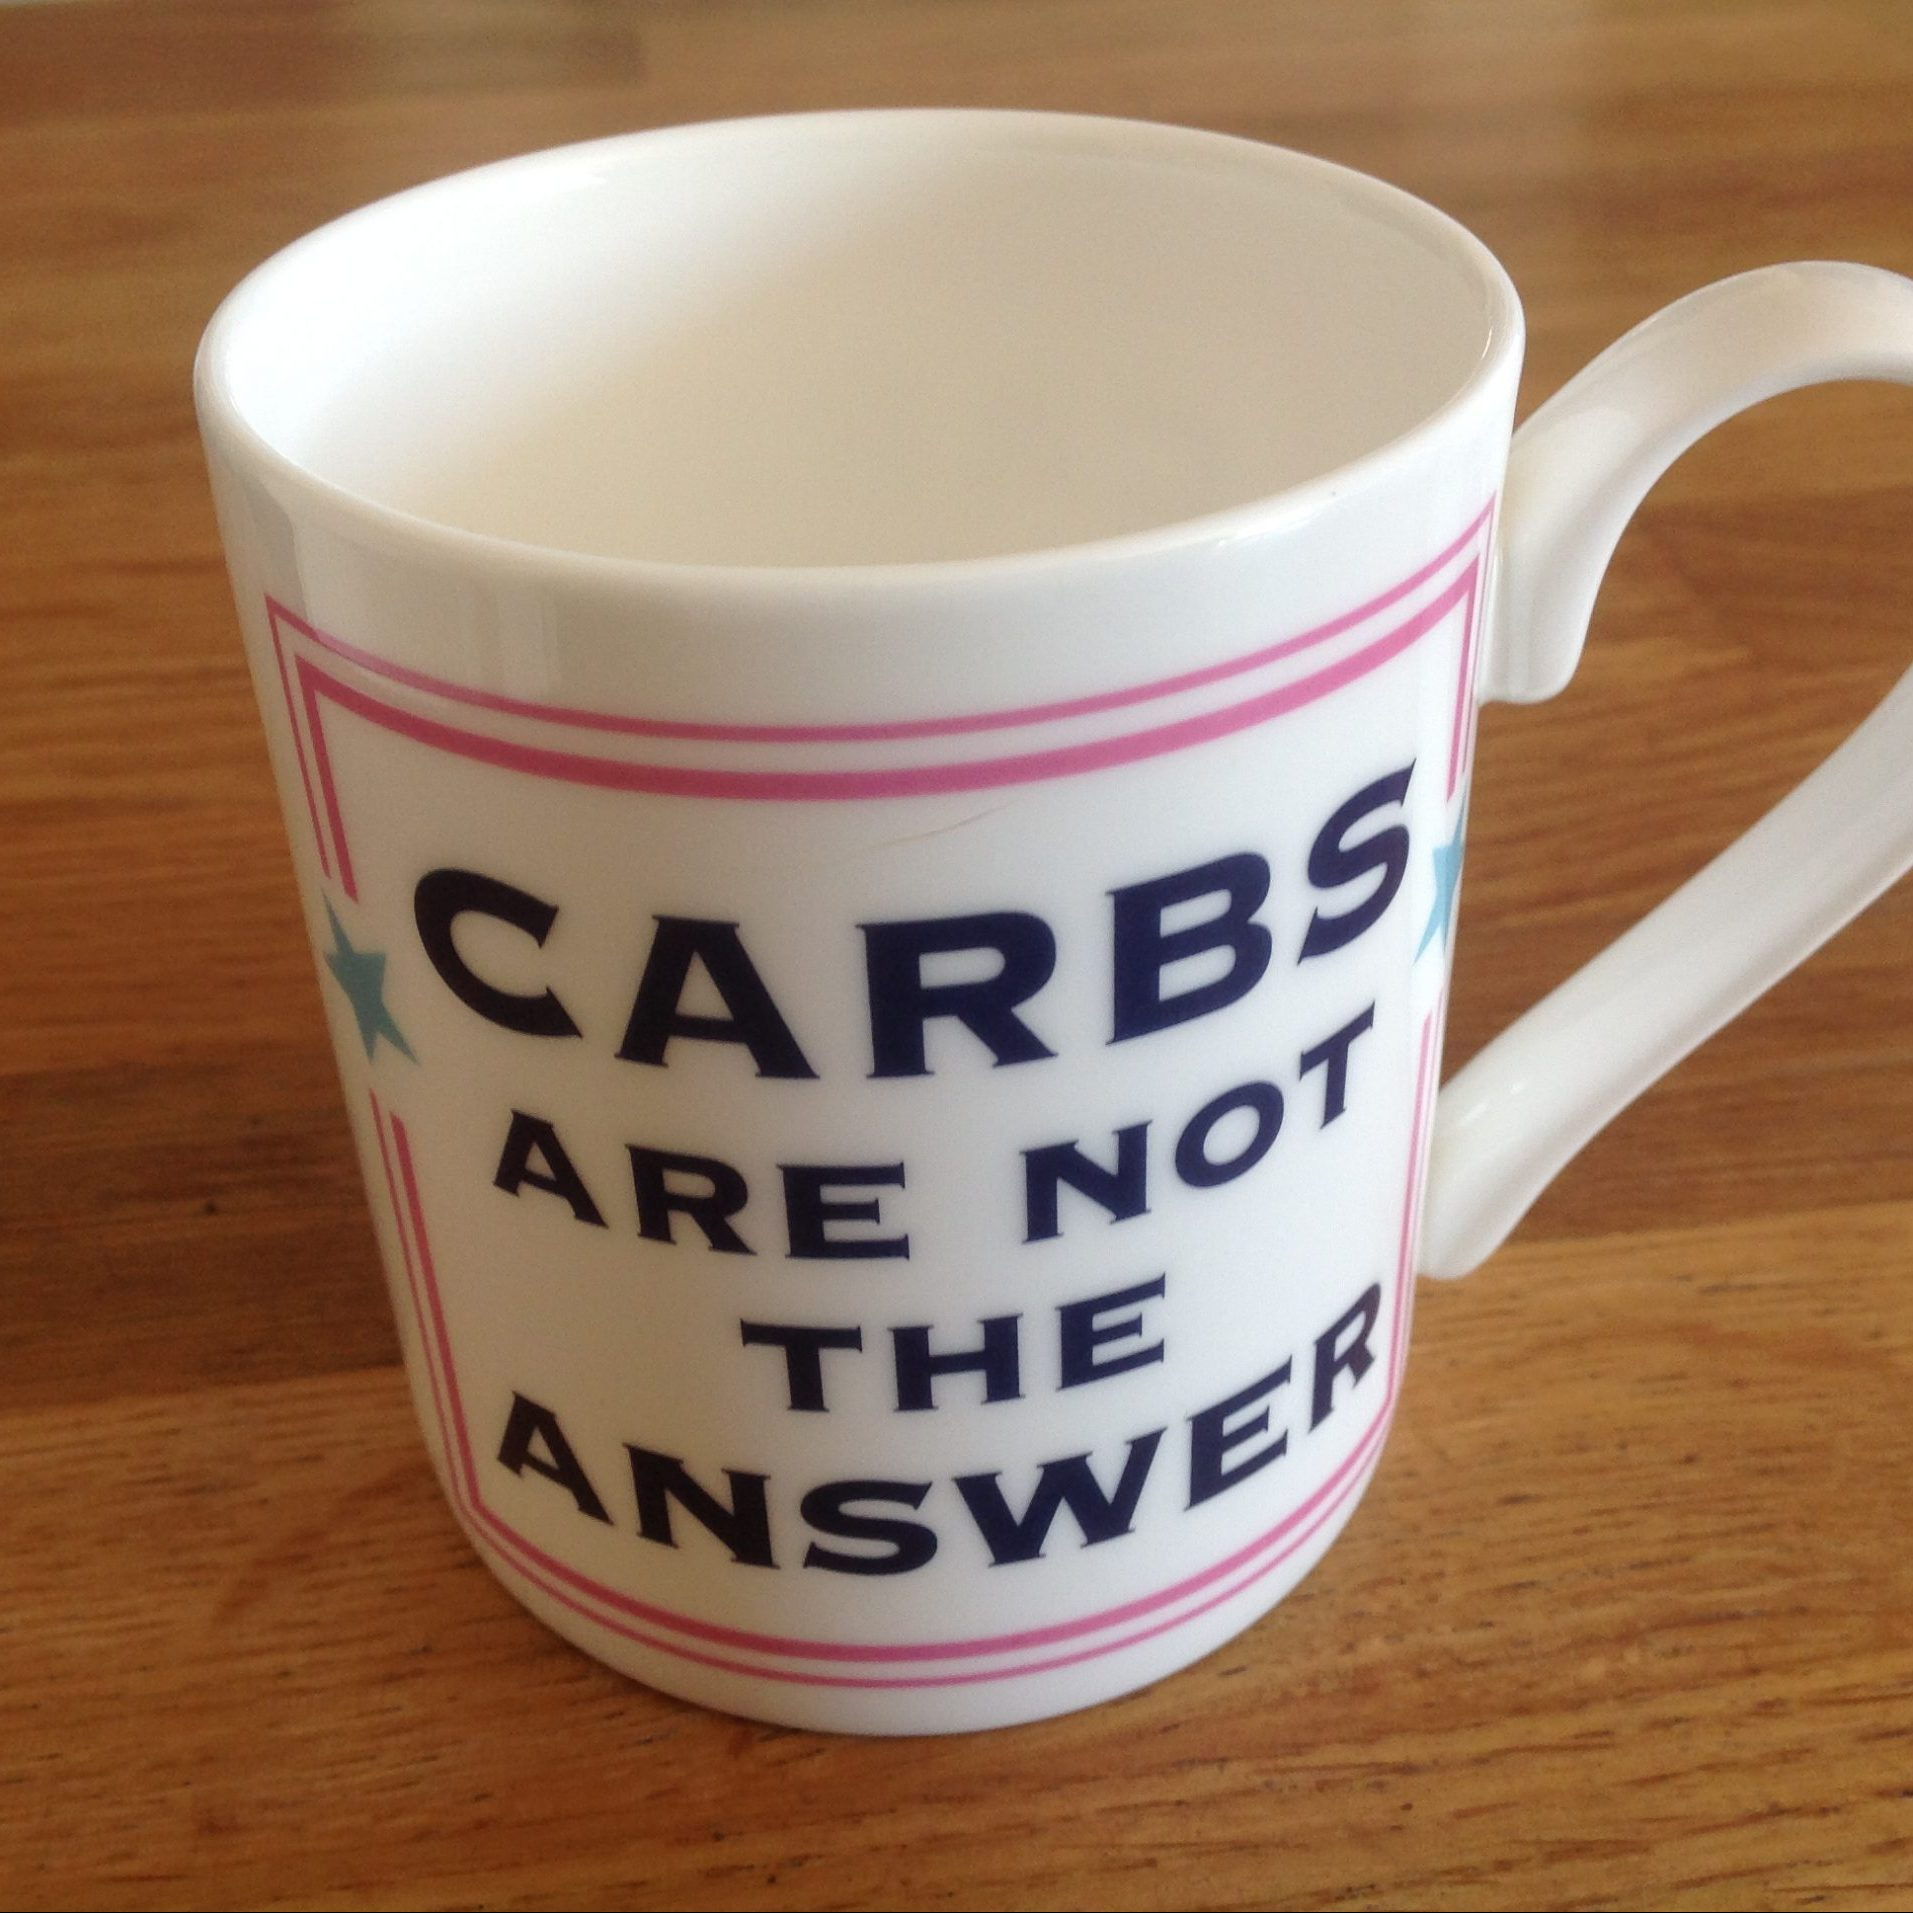 Carbs Are Not The Answer